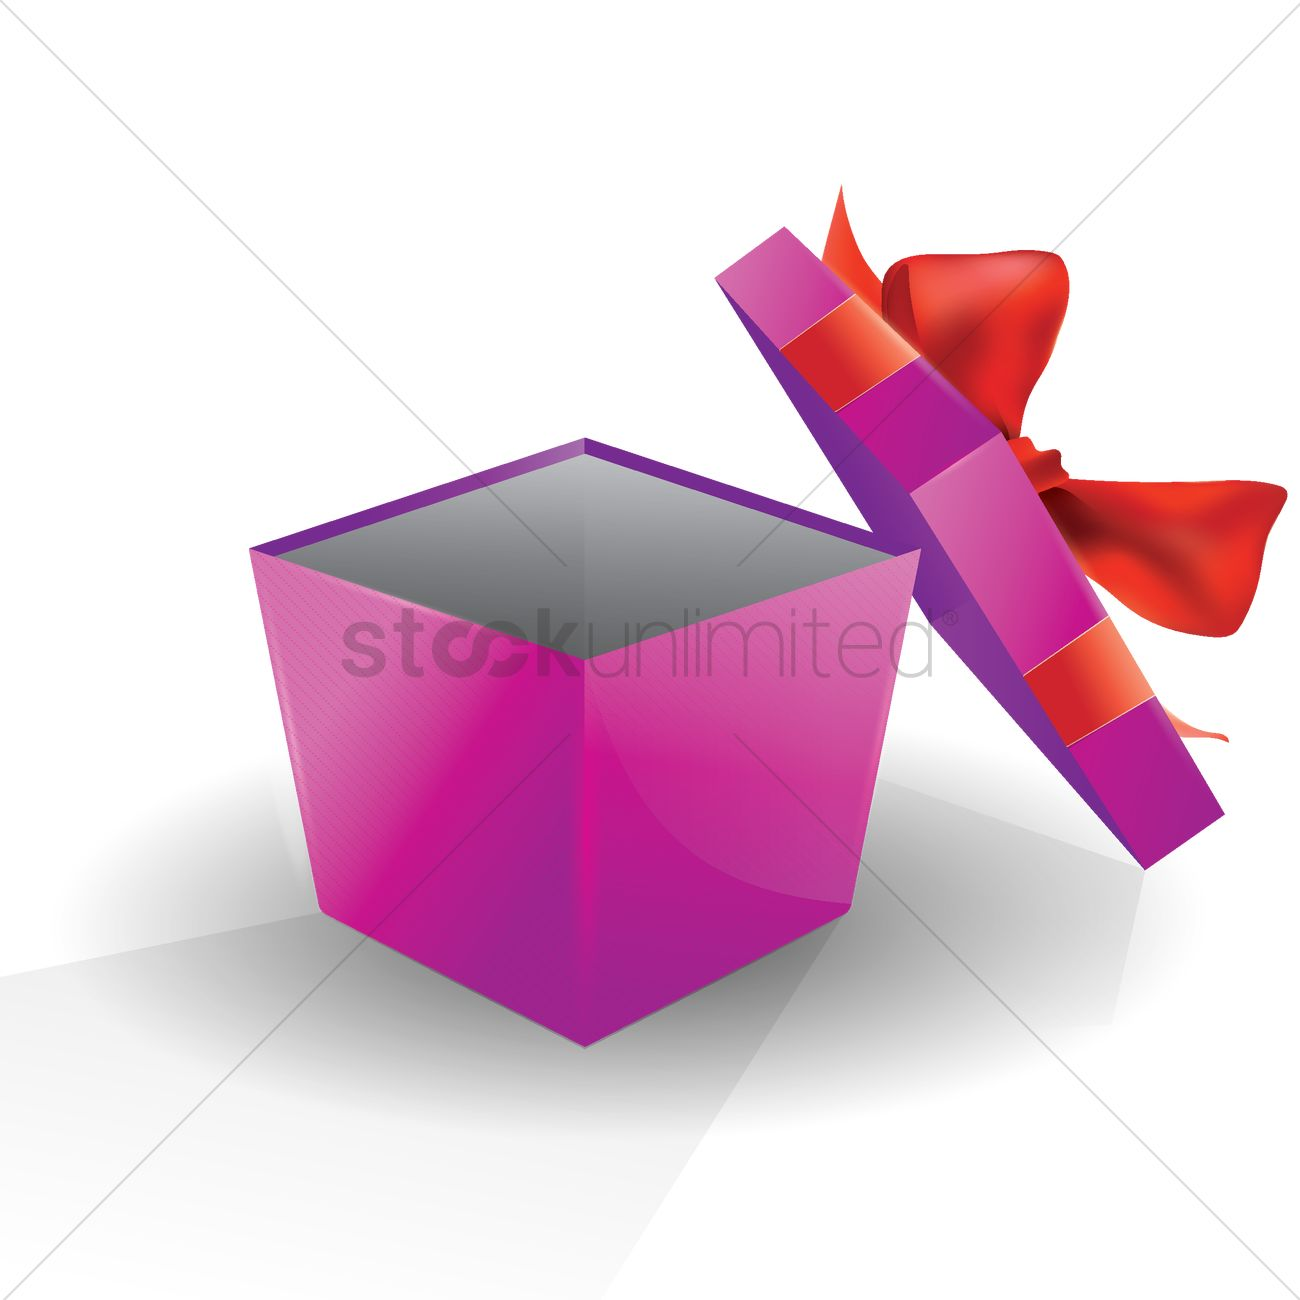 bb50a920aa043 Opened gift box Vector Image - 1935458